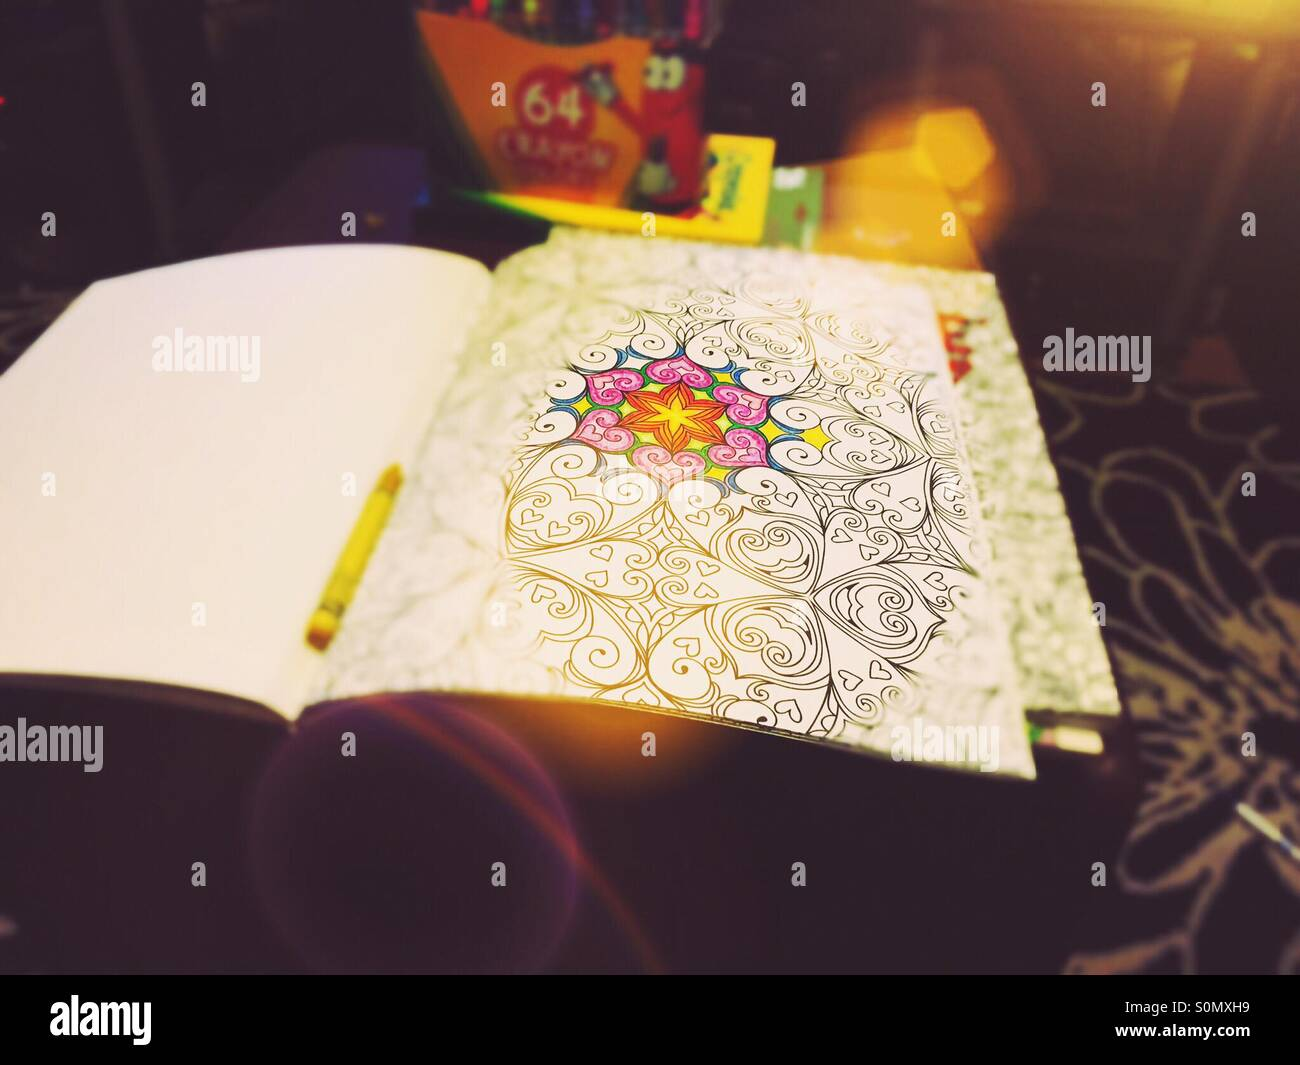 Coloring Book Crayons Stock Photos & Coloring Book Crayons Stock ...